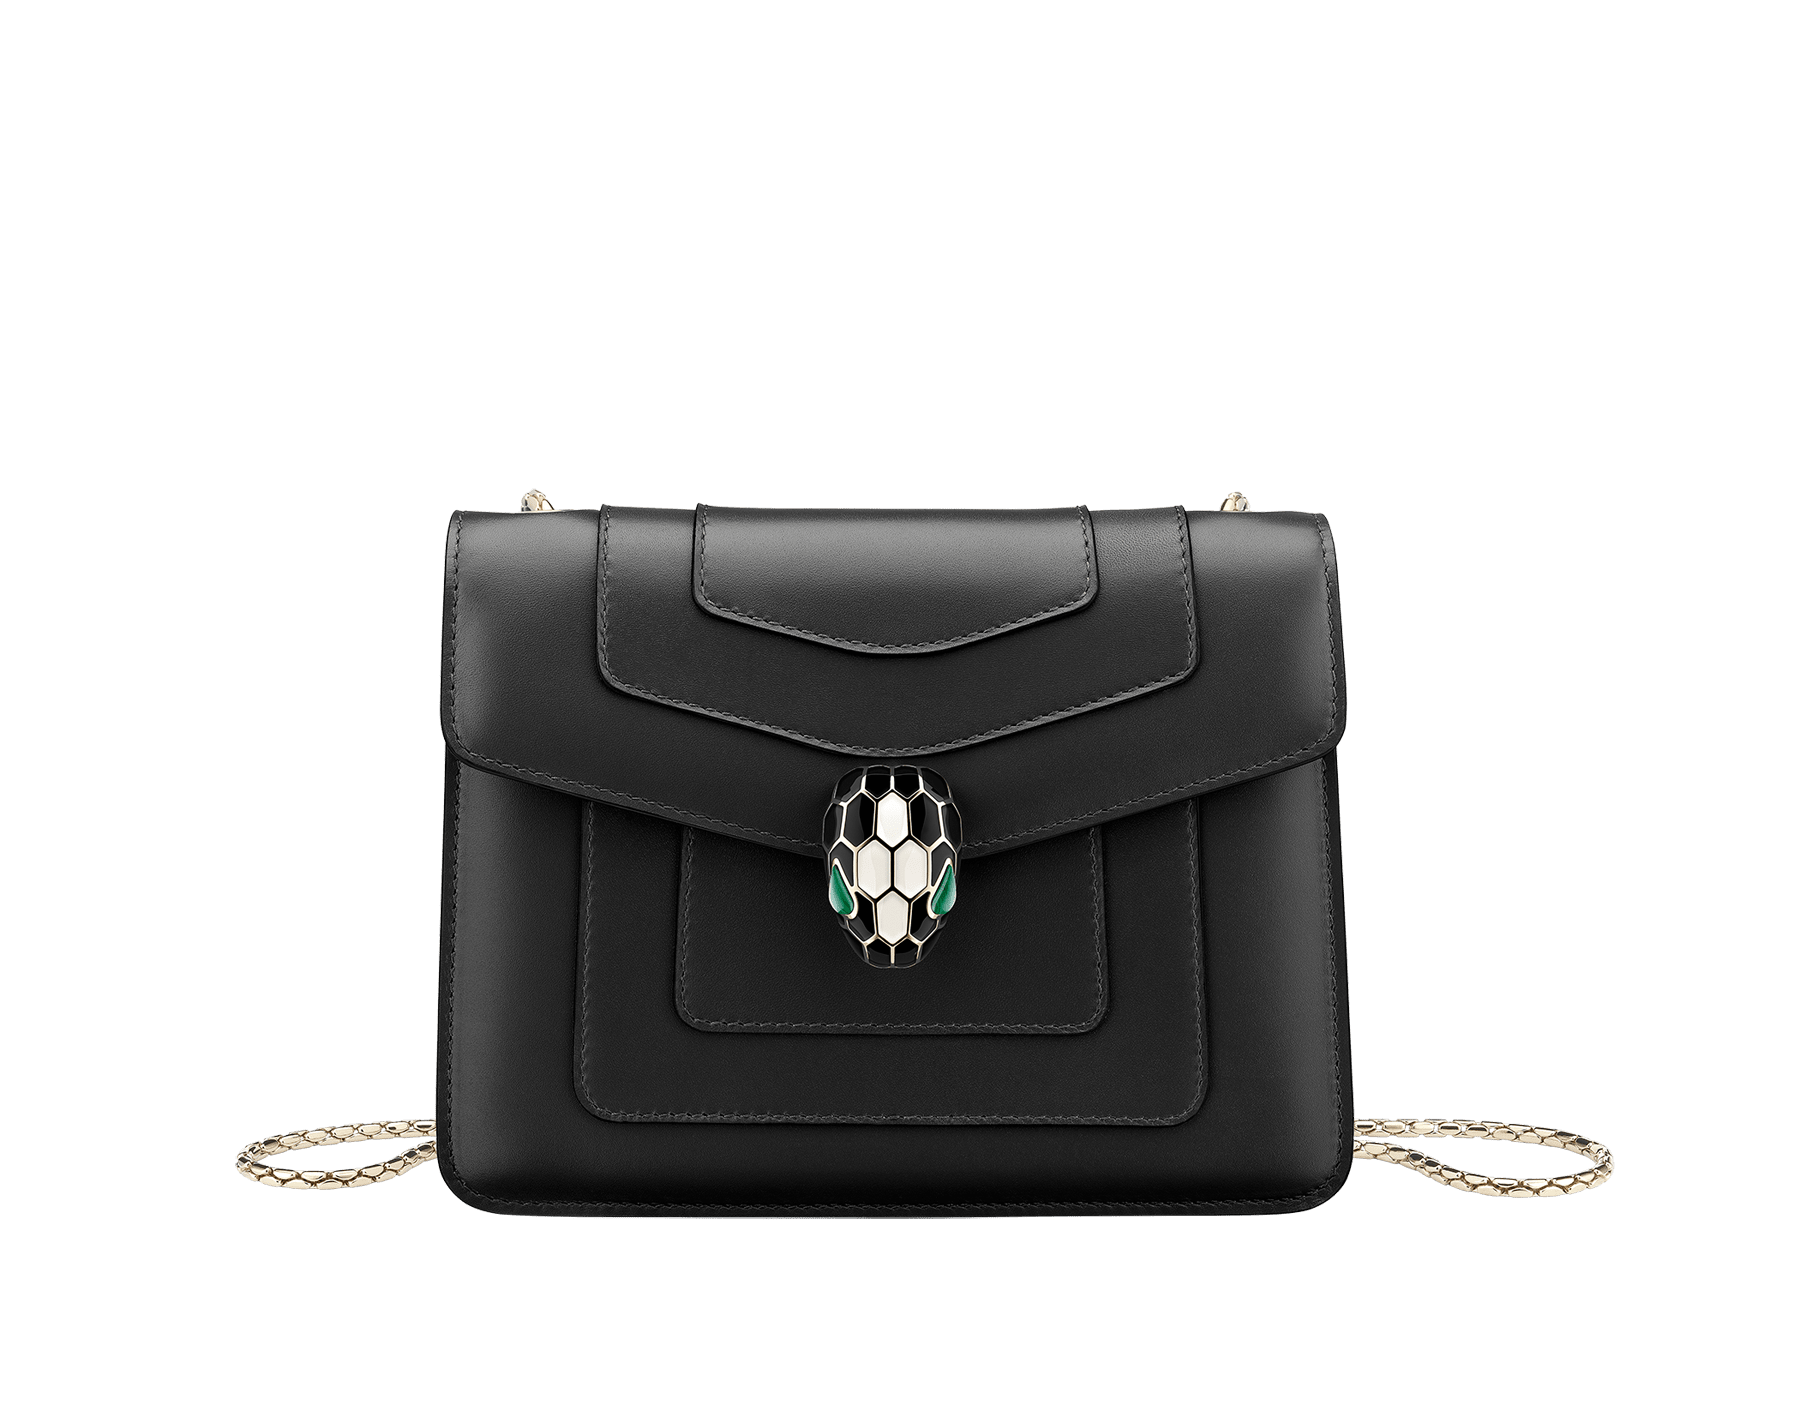 """Serpenti Forever"" crossbody bag in emerald green calf leather with amethyst purple gros grain internal lining. Iconic snakehead closure in light gold plated brass enriched with black and white agate enamel, and green malachite eyes. 422-CLa image 1"